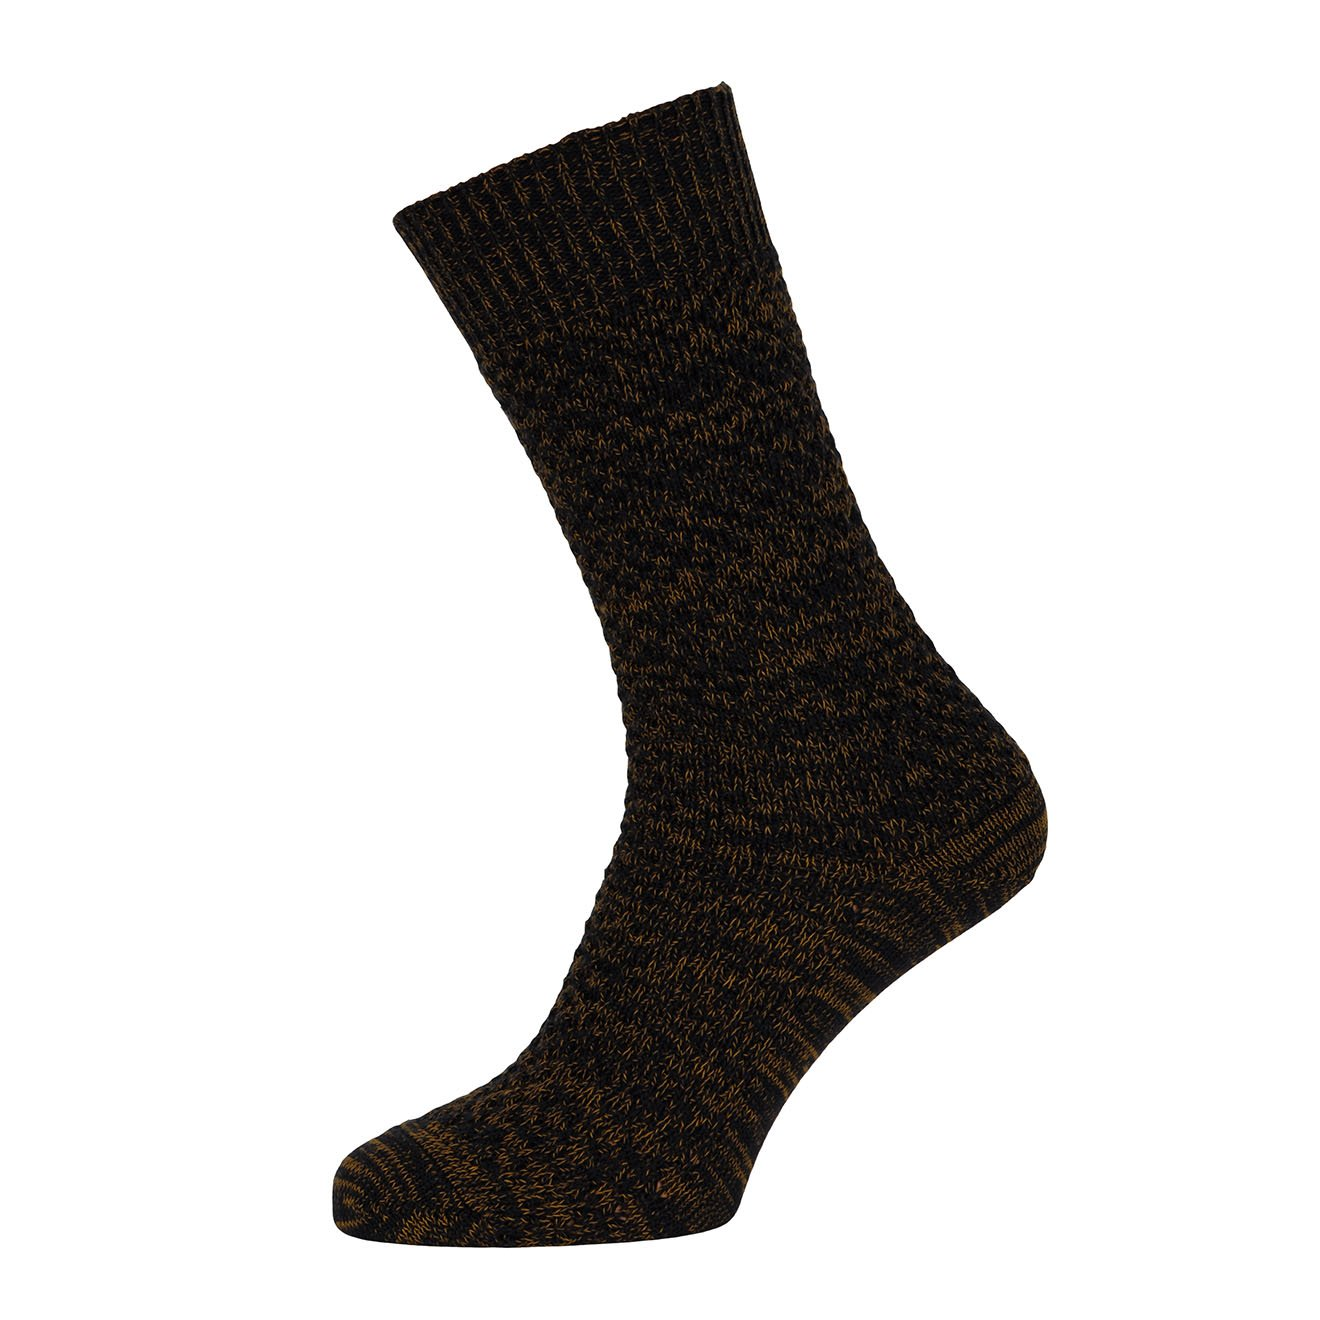 MP Crafted Garments Socks Oscar Black Orange